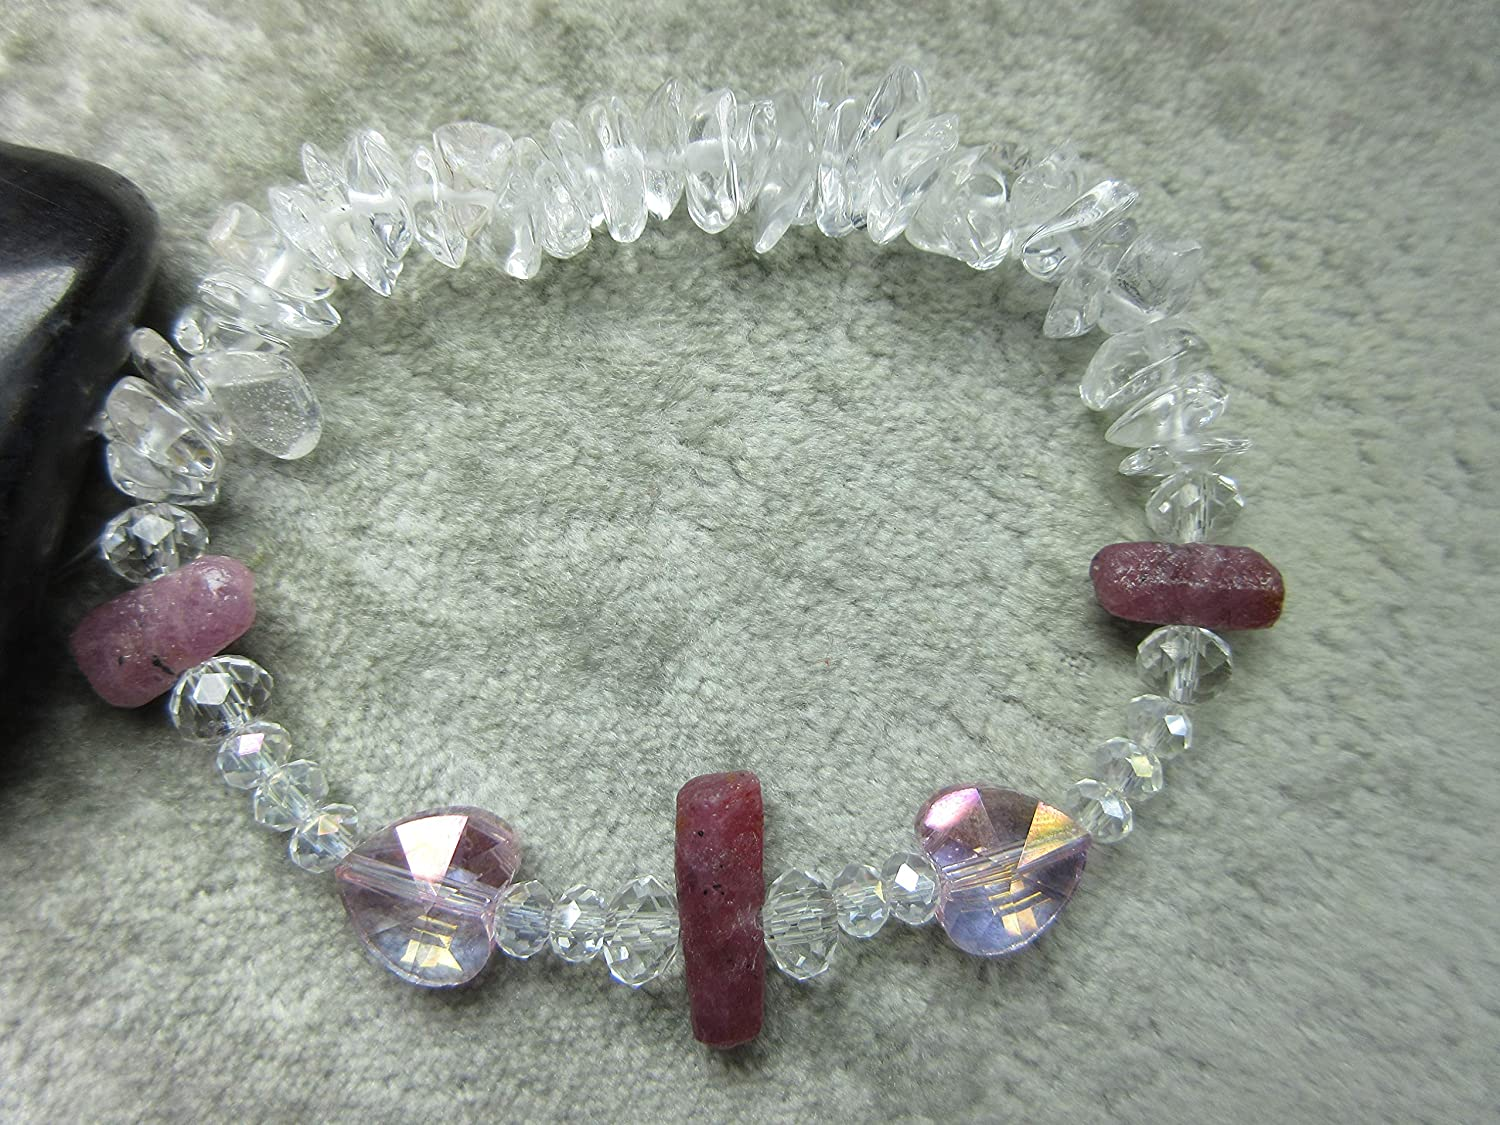 Genuine Ruby and Quartz Healing Max 42% OFF Love Bracelet Heart Sexuality Max 40% OFF